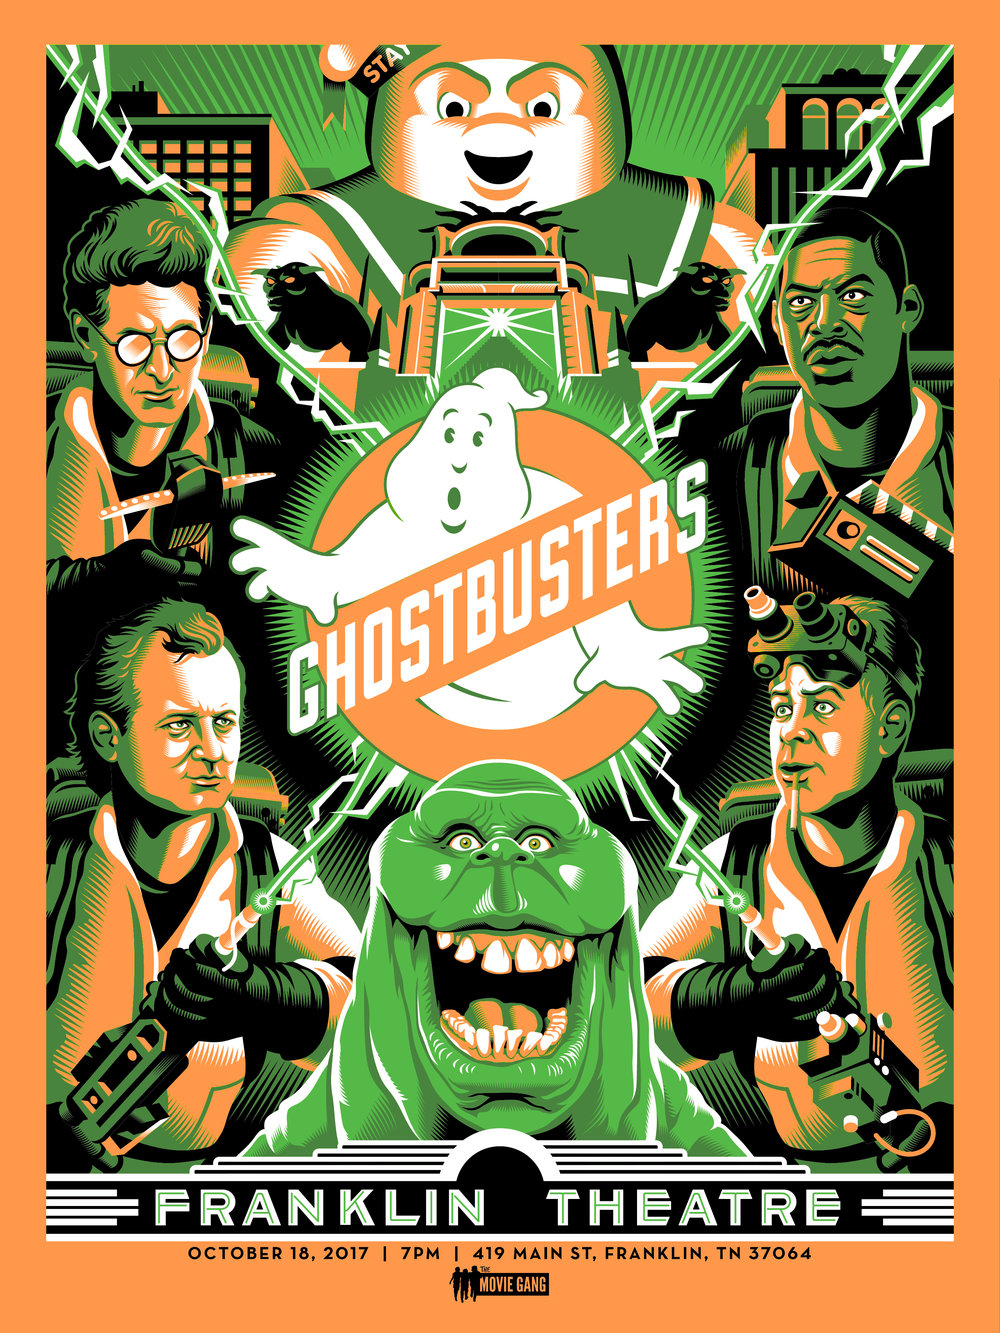 ghostbusters_franklin_final_colors-01.jpg